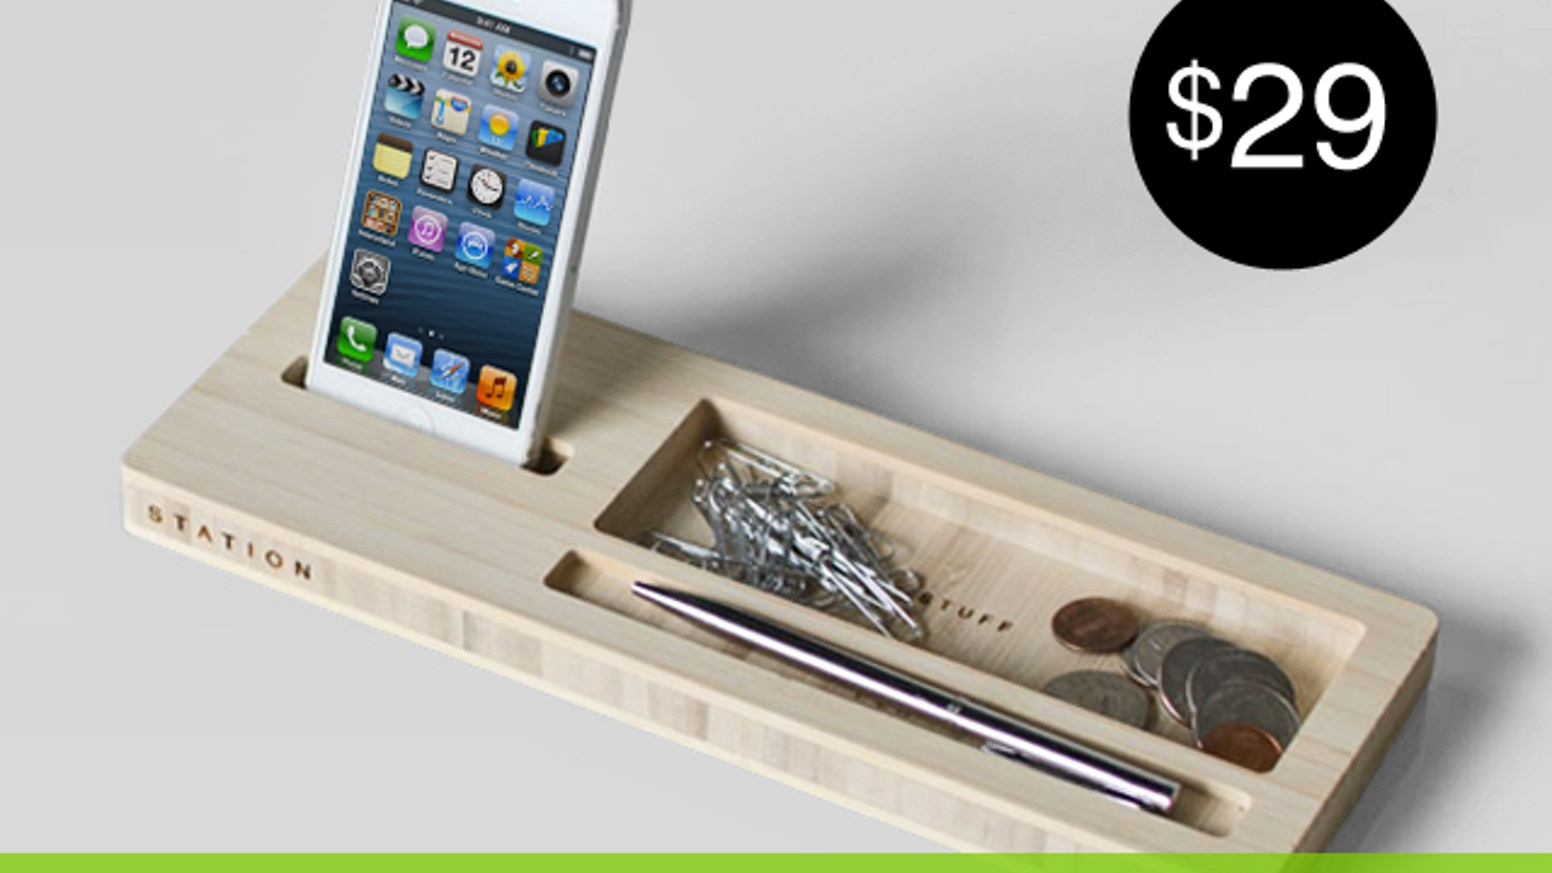 MODERN Caddy for your phone, keys, sunglasses, pens, loose change, etc. iPhone, Samsung Galaxy, Android and many more.